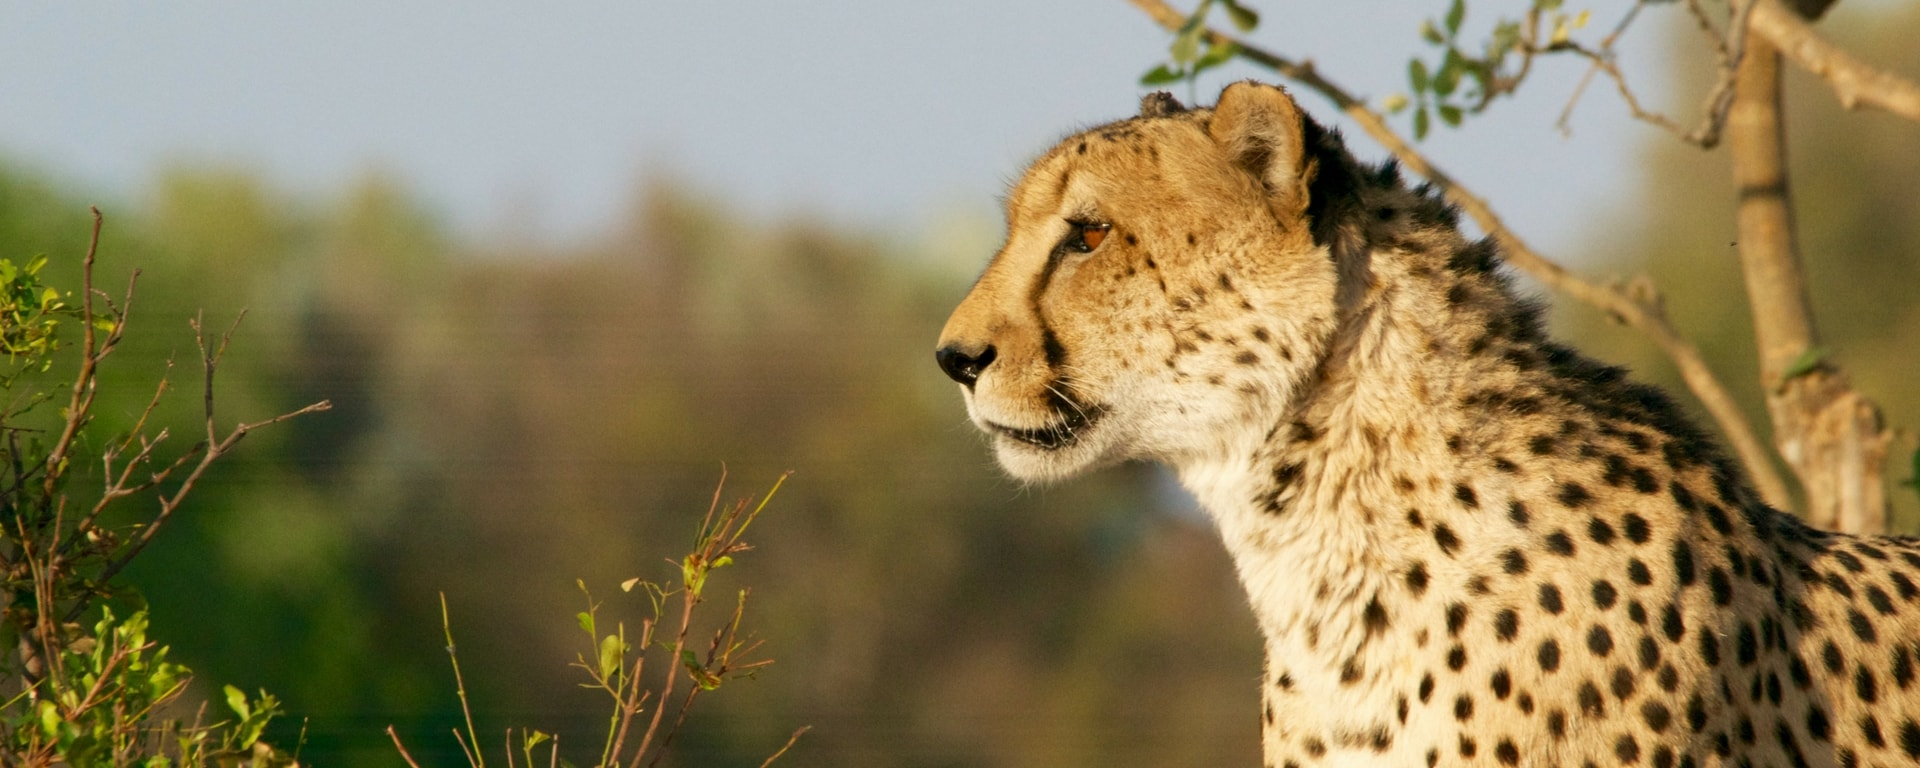 Kenyan villagers out run 2 cheetahs and capture them alive